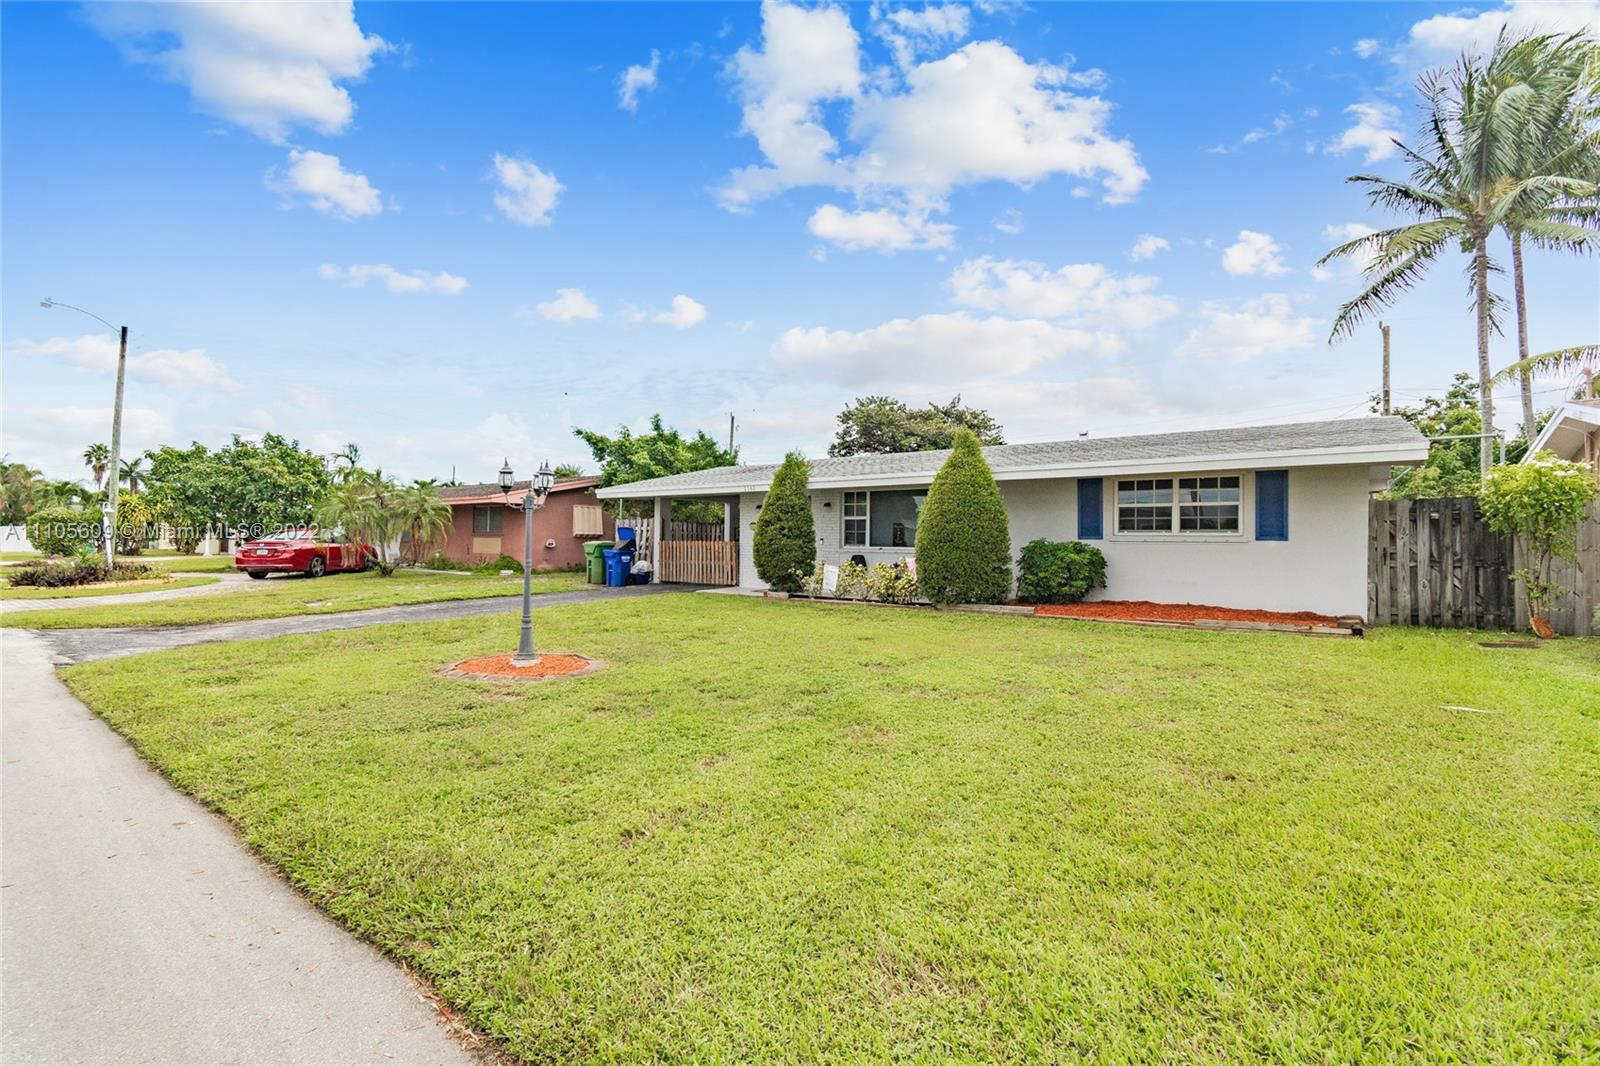 Boulevard Heights - 1161 NW 78th Ave, Pembroke Pines, FL 33024